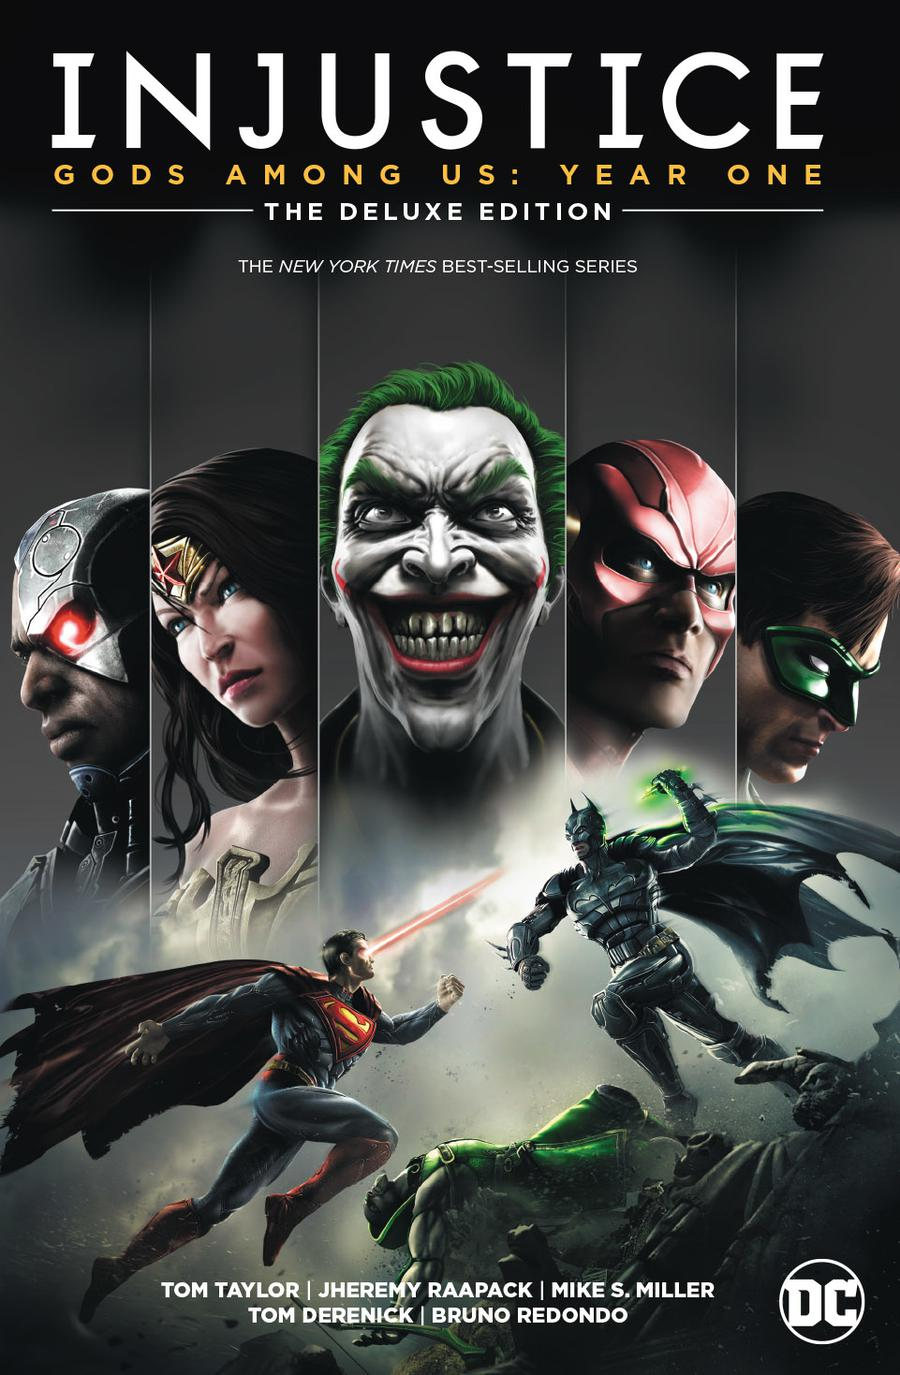 Injustice Gods Among Us Year One Deluxe Edition Book 1 HC